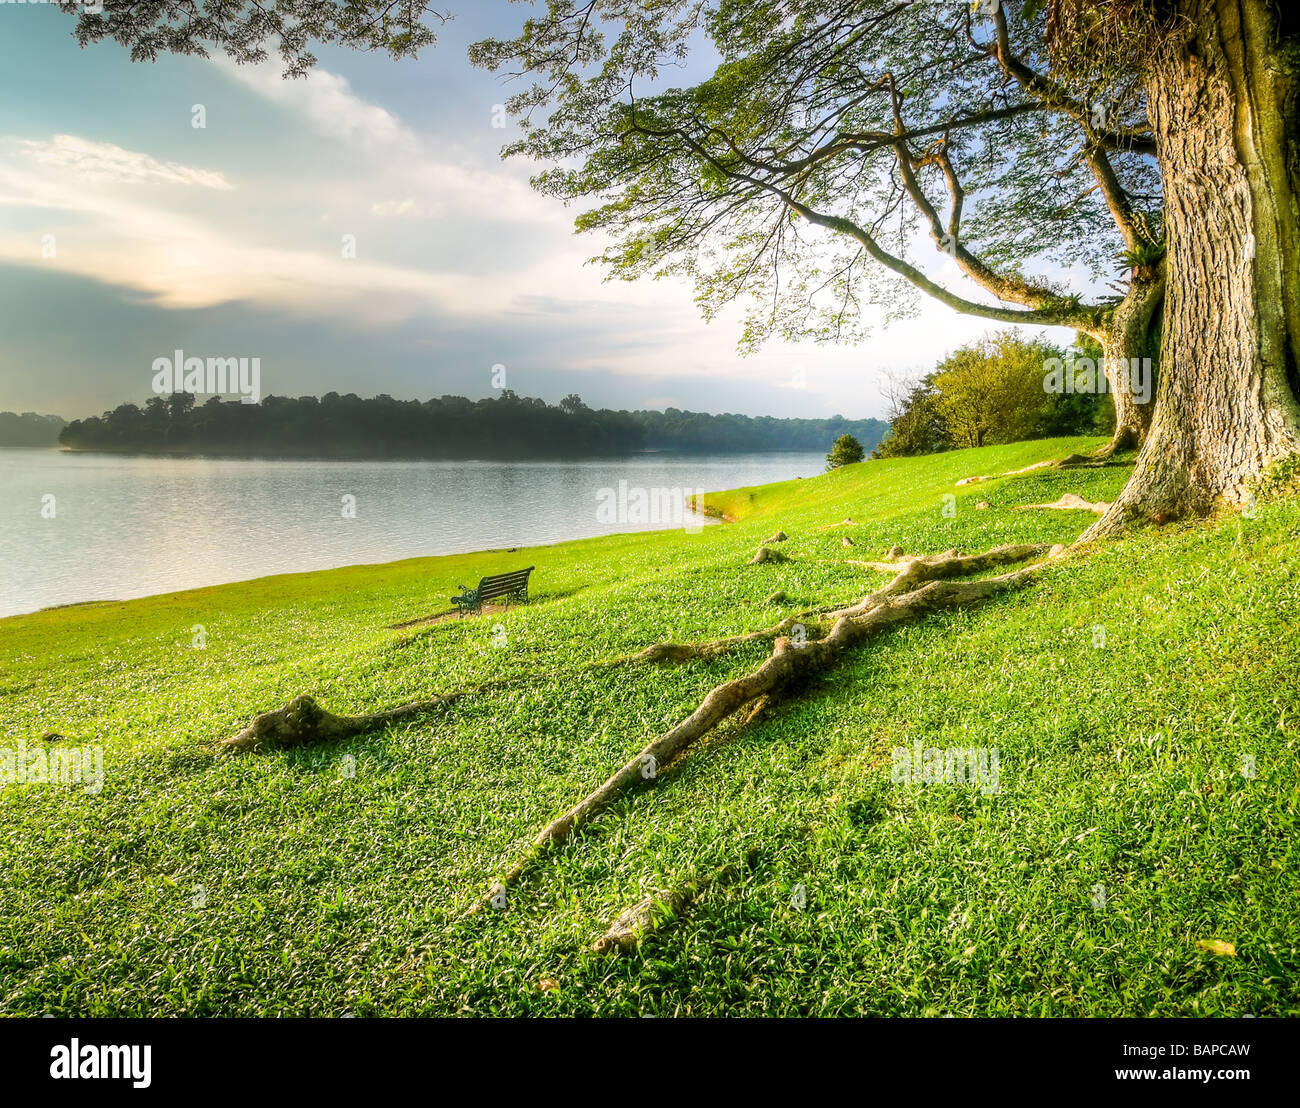 Under a Large Tree on the Lake Shore - Stock Image